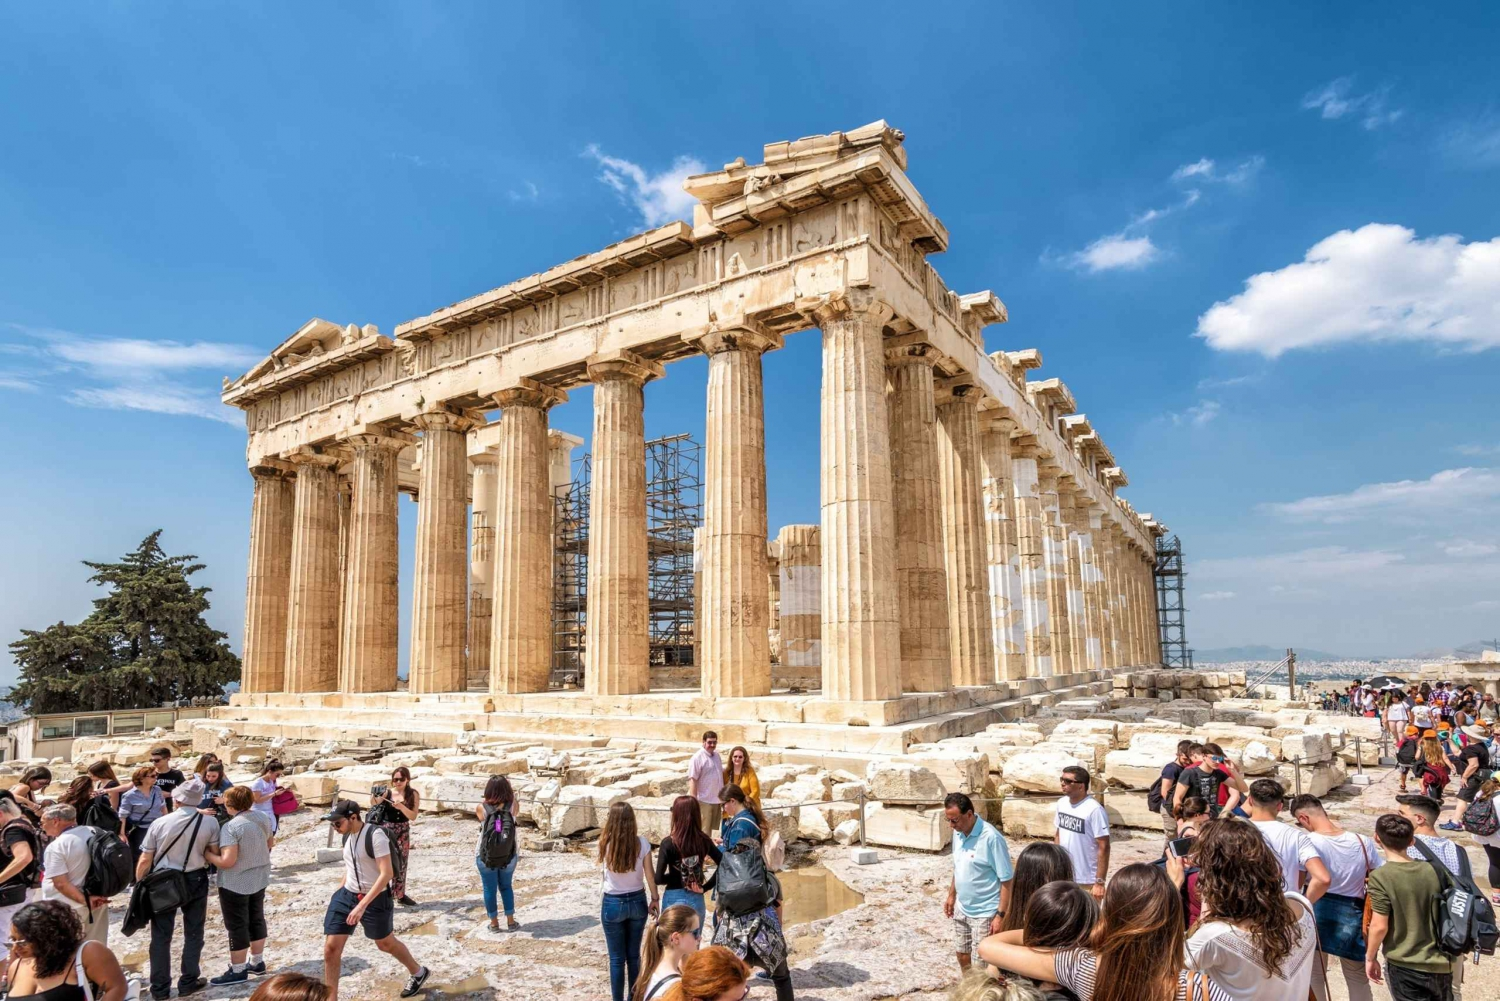 Acropolis and Acropolis Museum: Entry Tickets